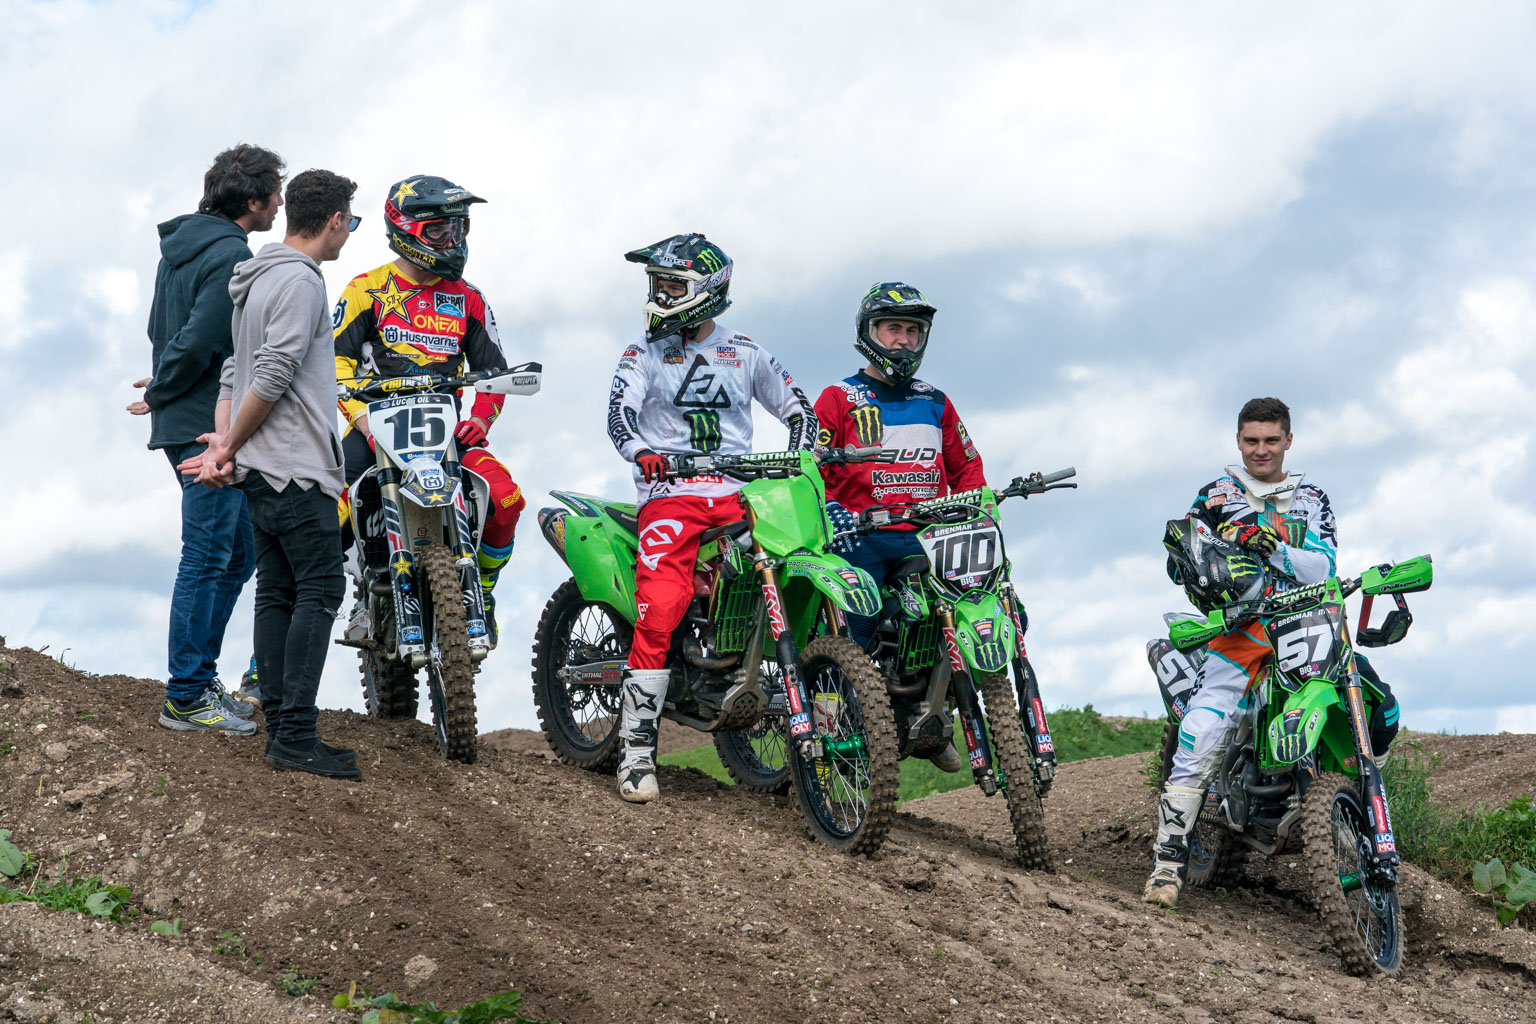 Wilson, Searle, Weltin and Sanayei were the luck ones who got to sample the track